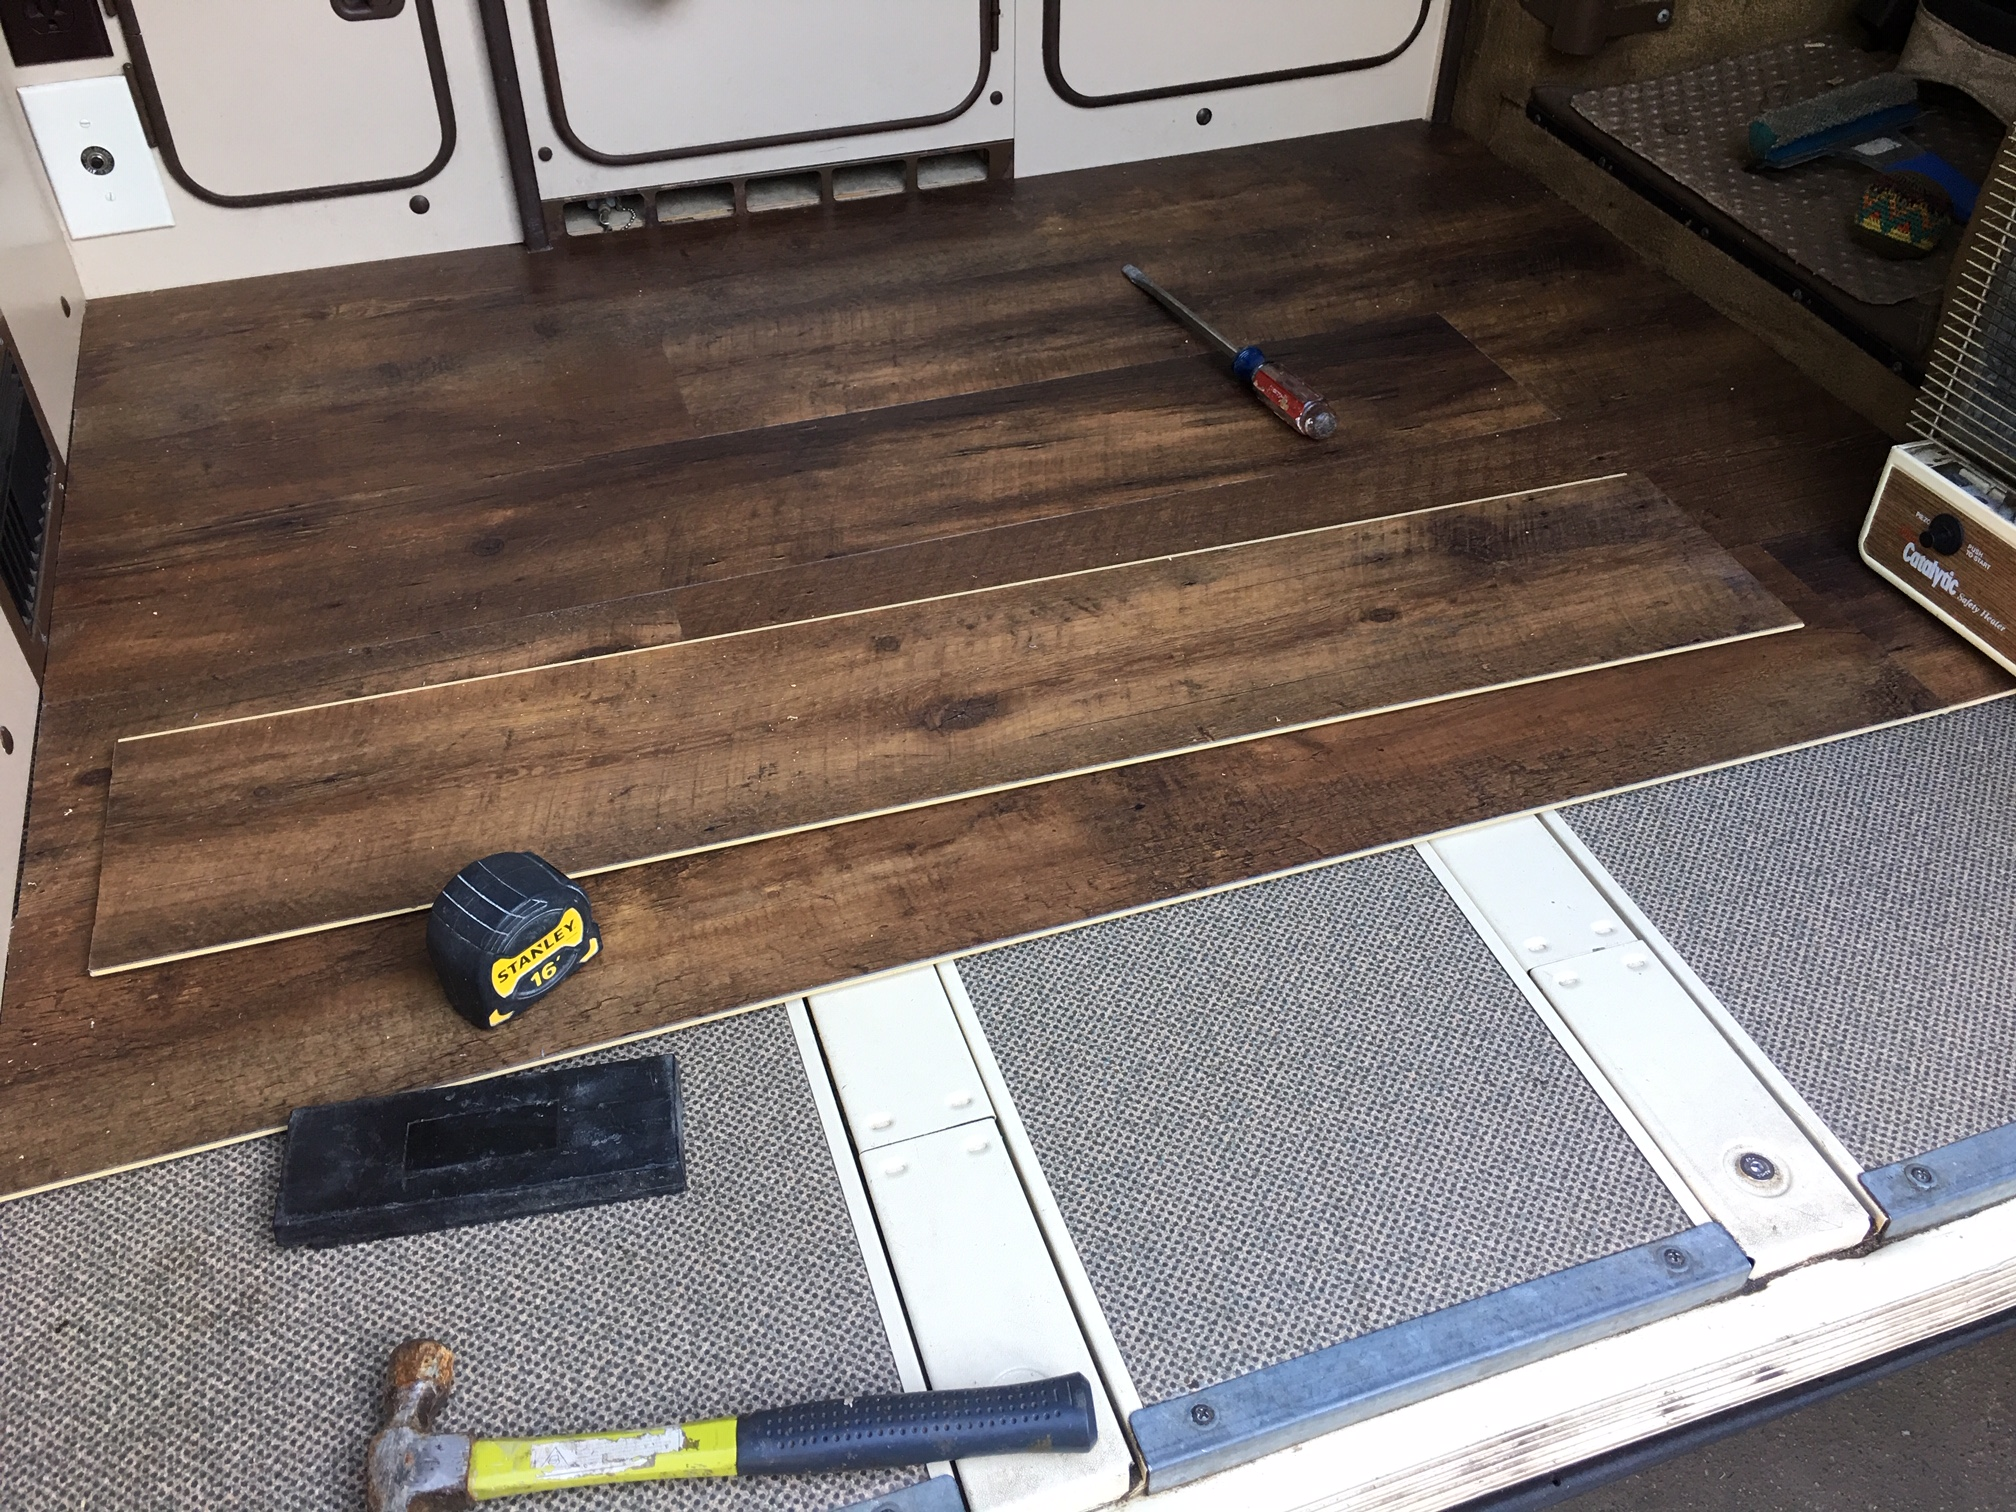 flooring being installed in the van